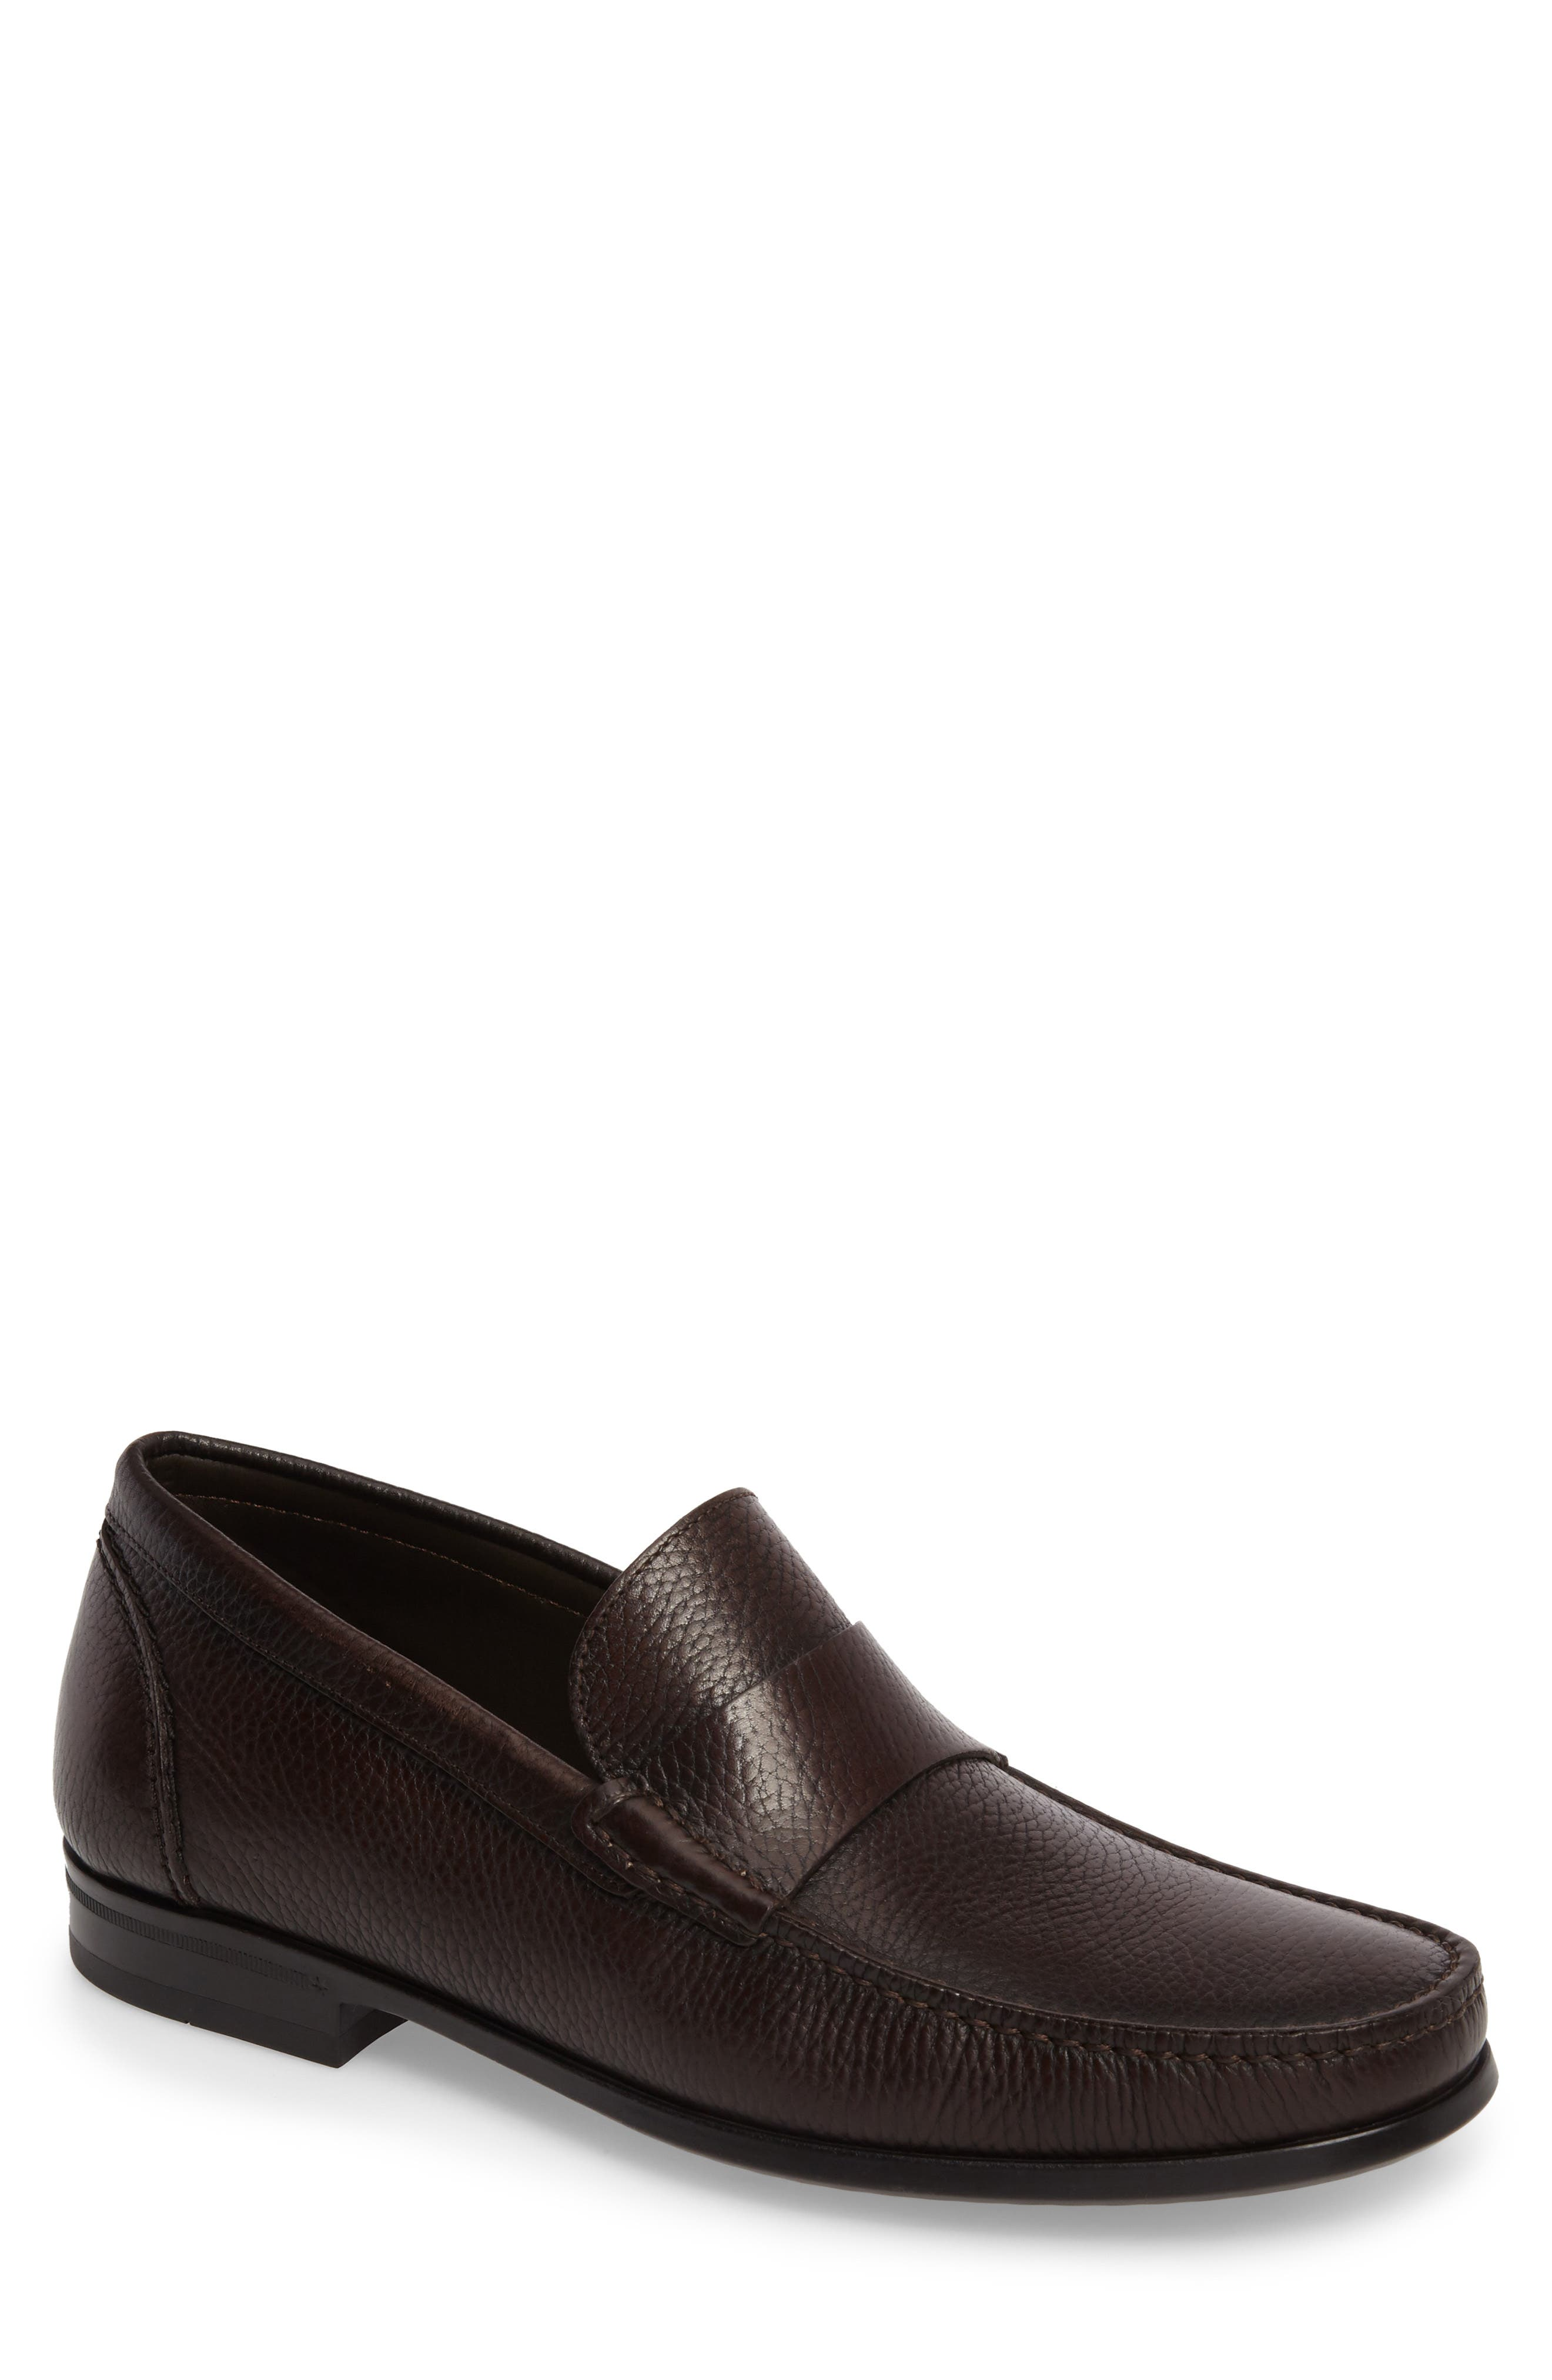 Savona Loafer,                         Main,                         color,